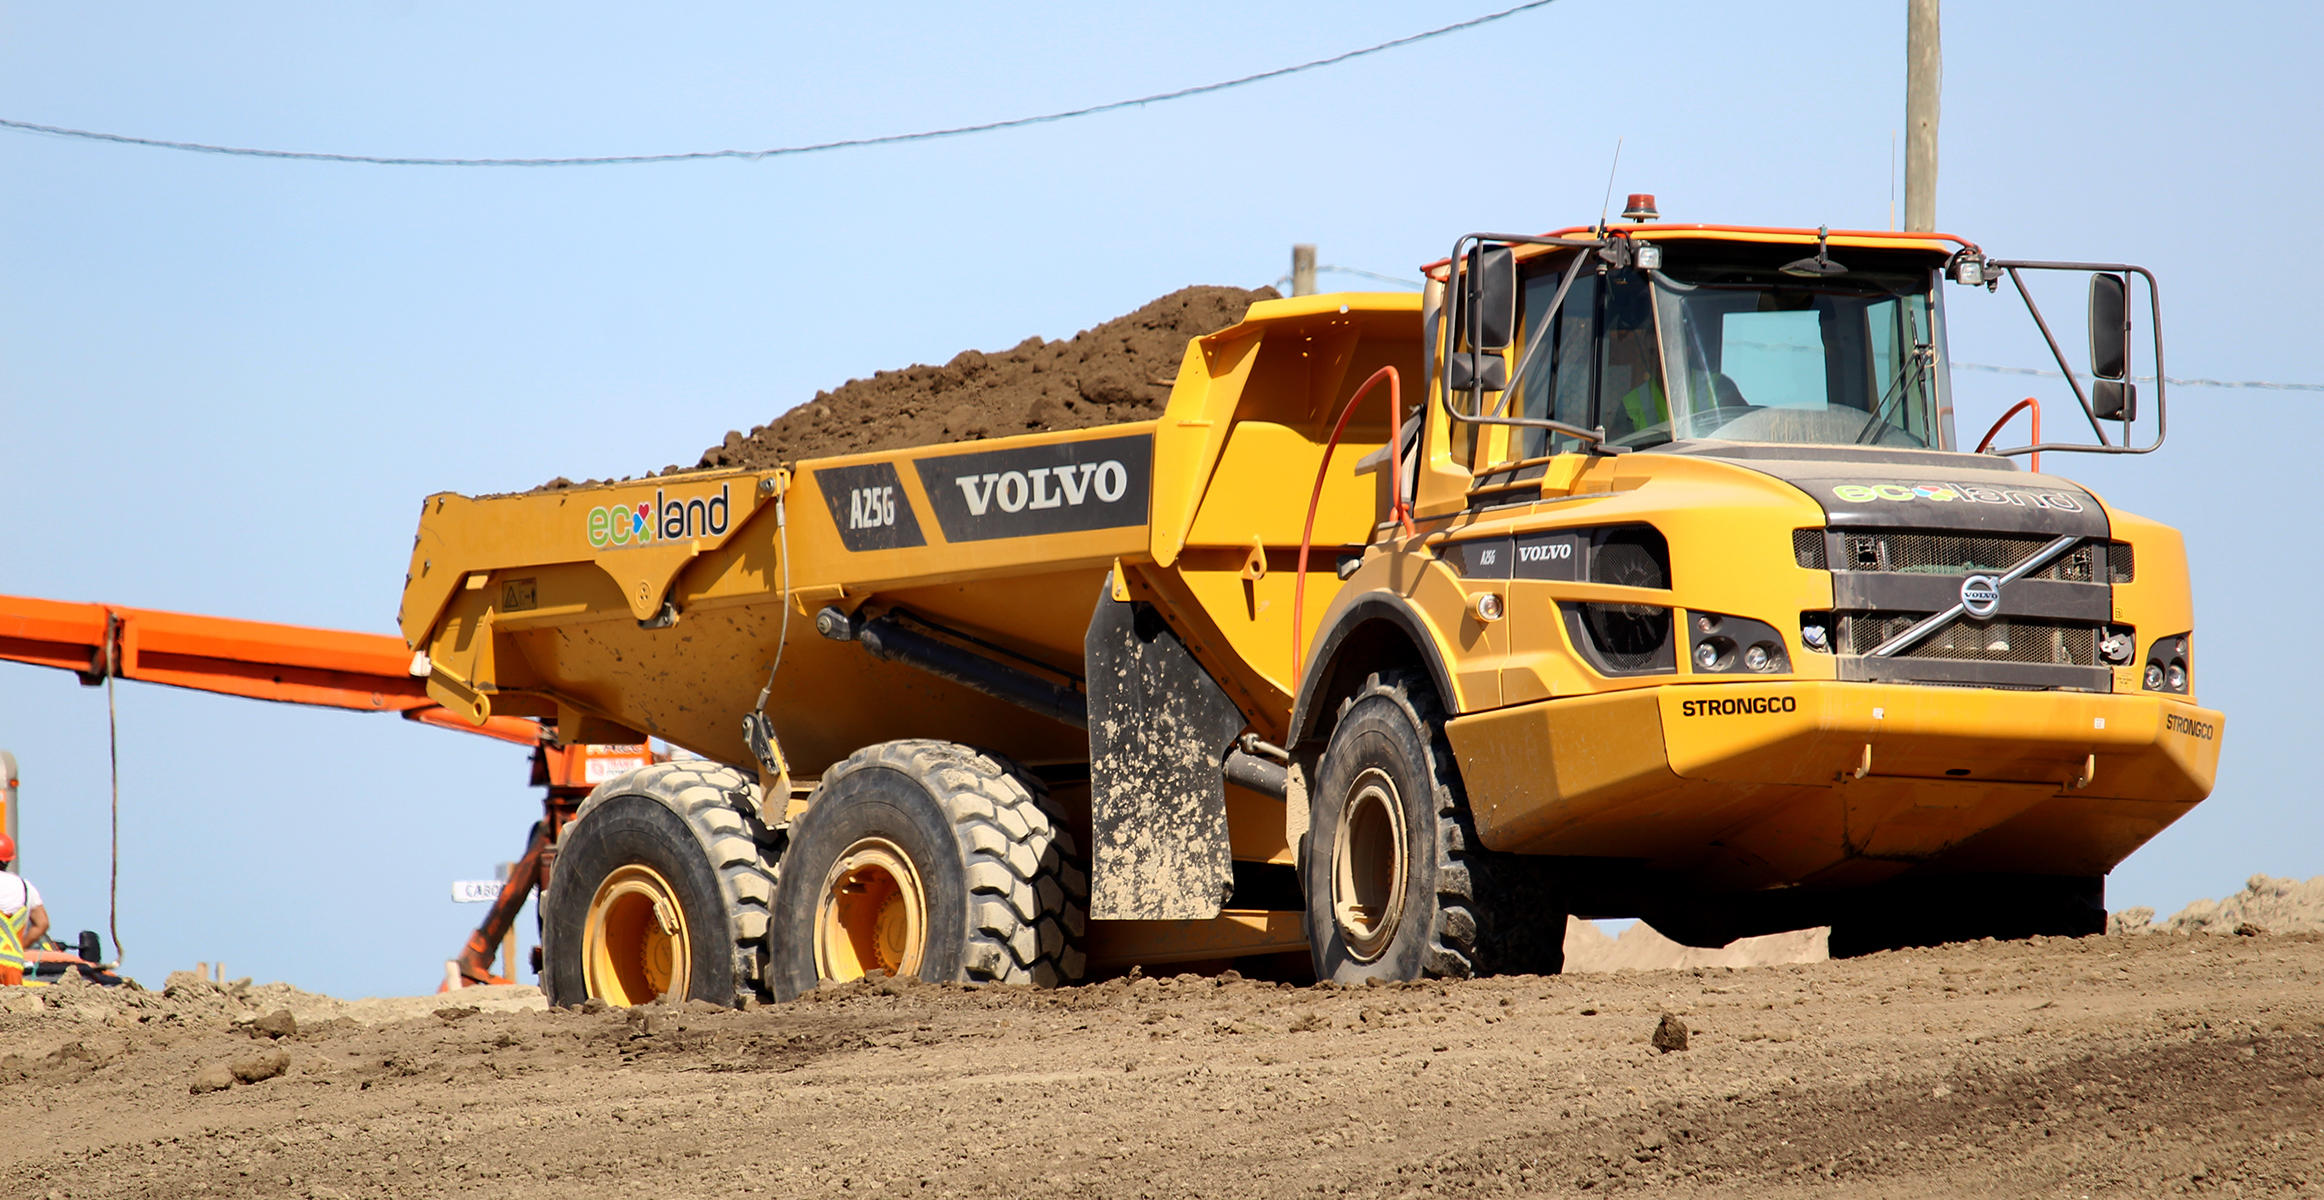 Volvo A25G used by Ecoland in Ontario, CA